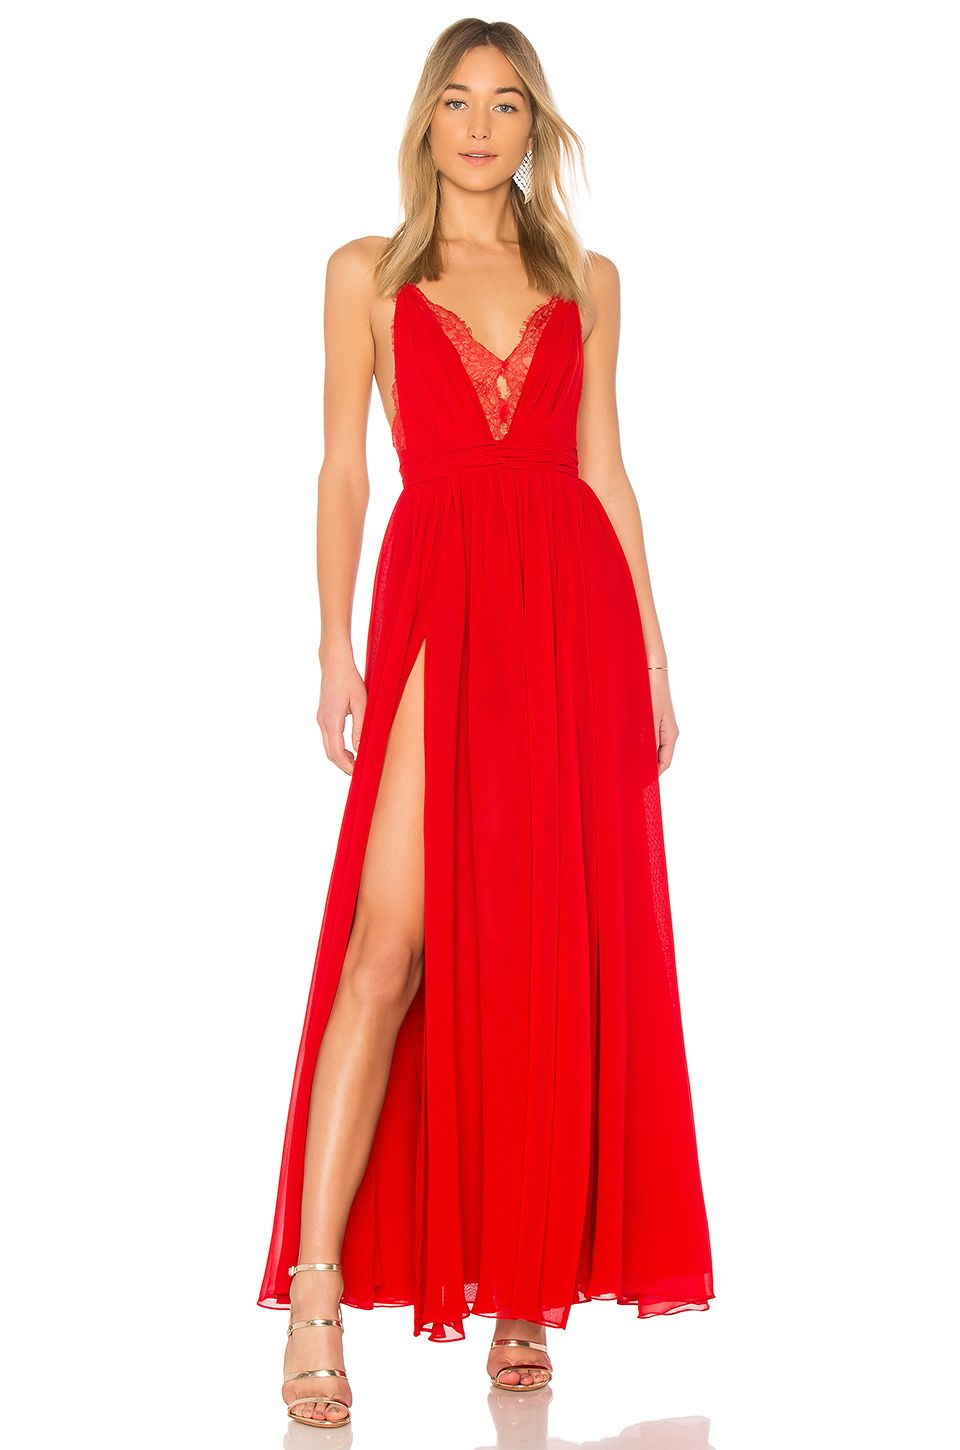 Revolve Fashion Clothes Women Gowns Wedding Attendee Dress From modern mini dresses to sequin slip dresses. pinterest